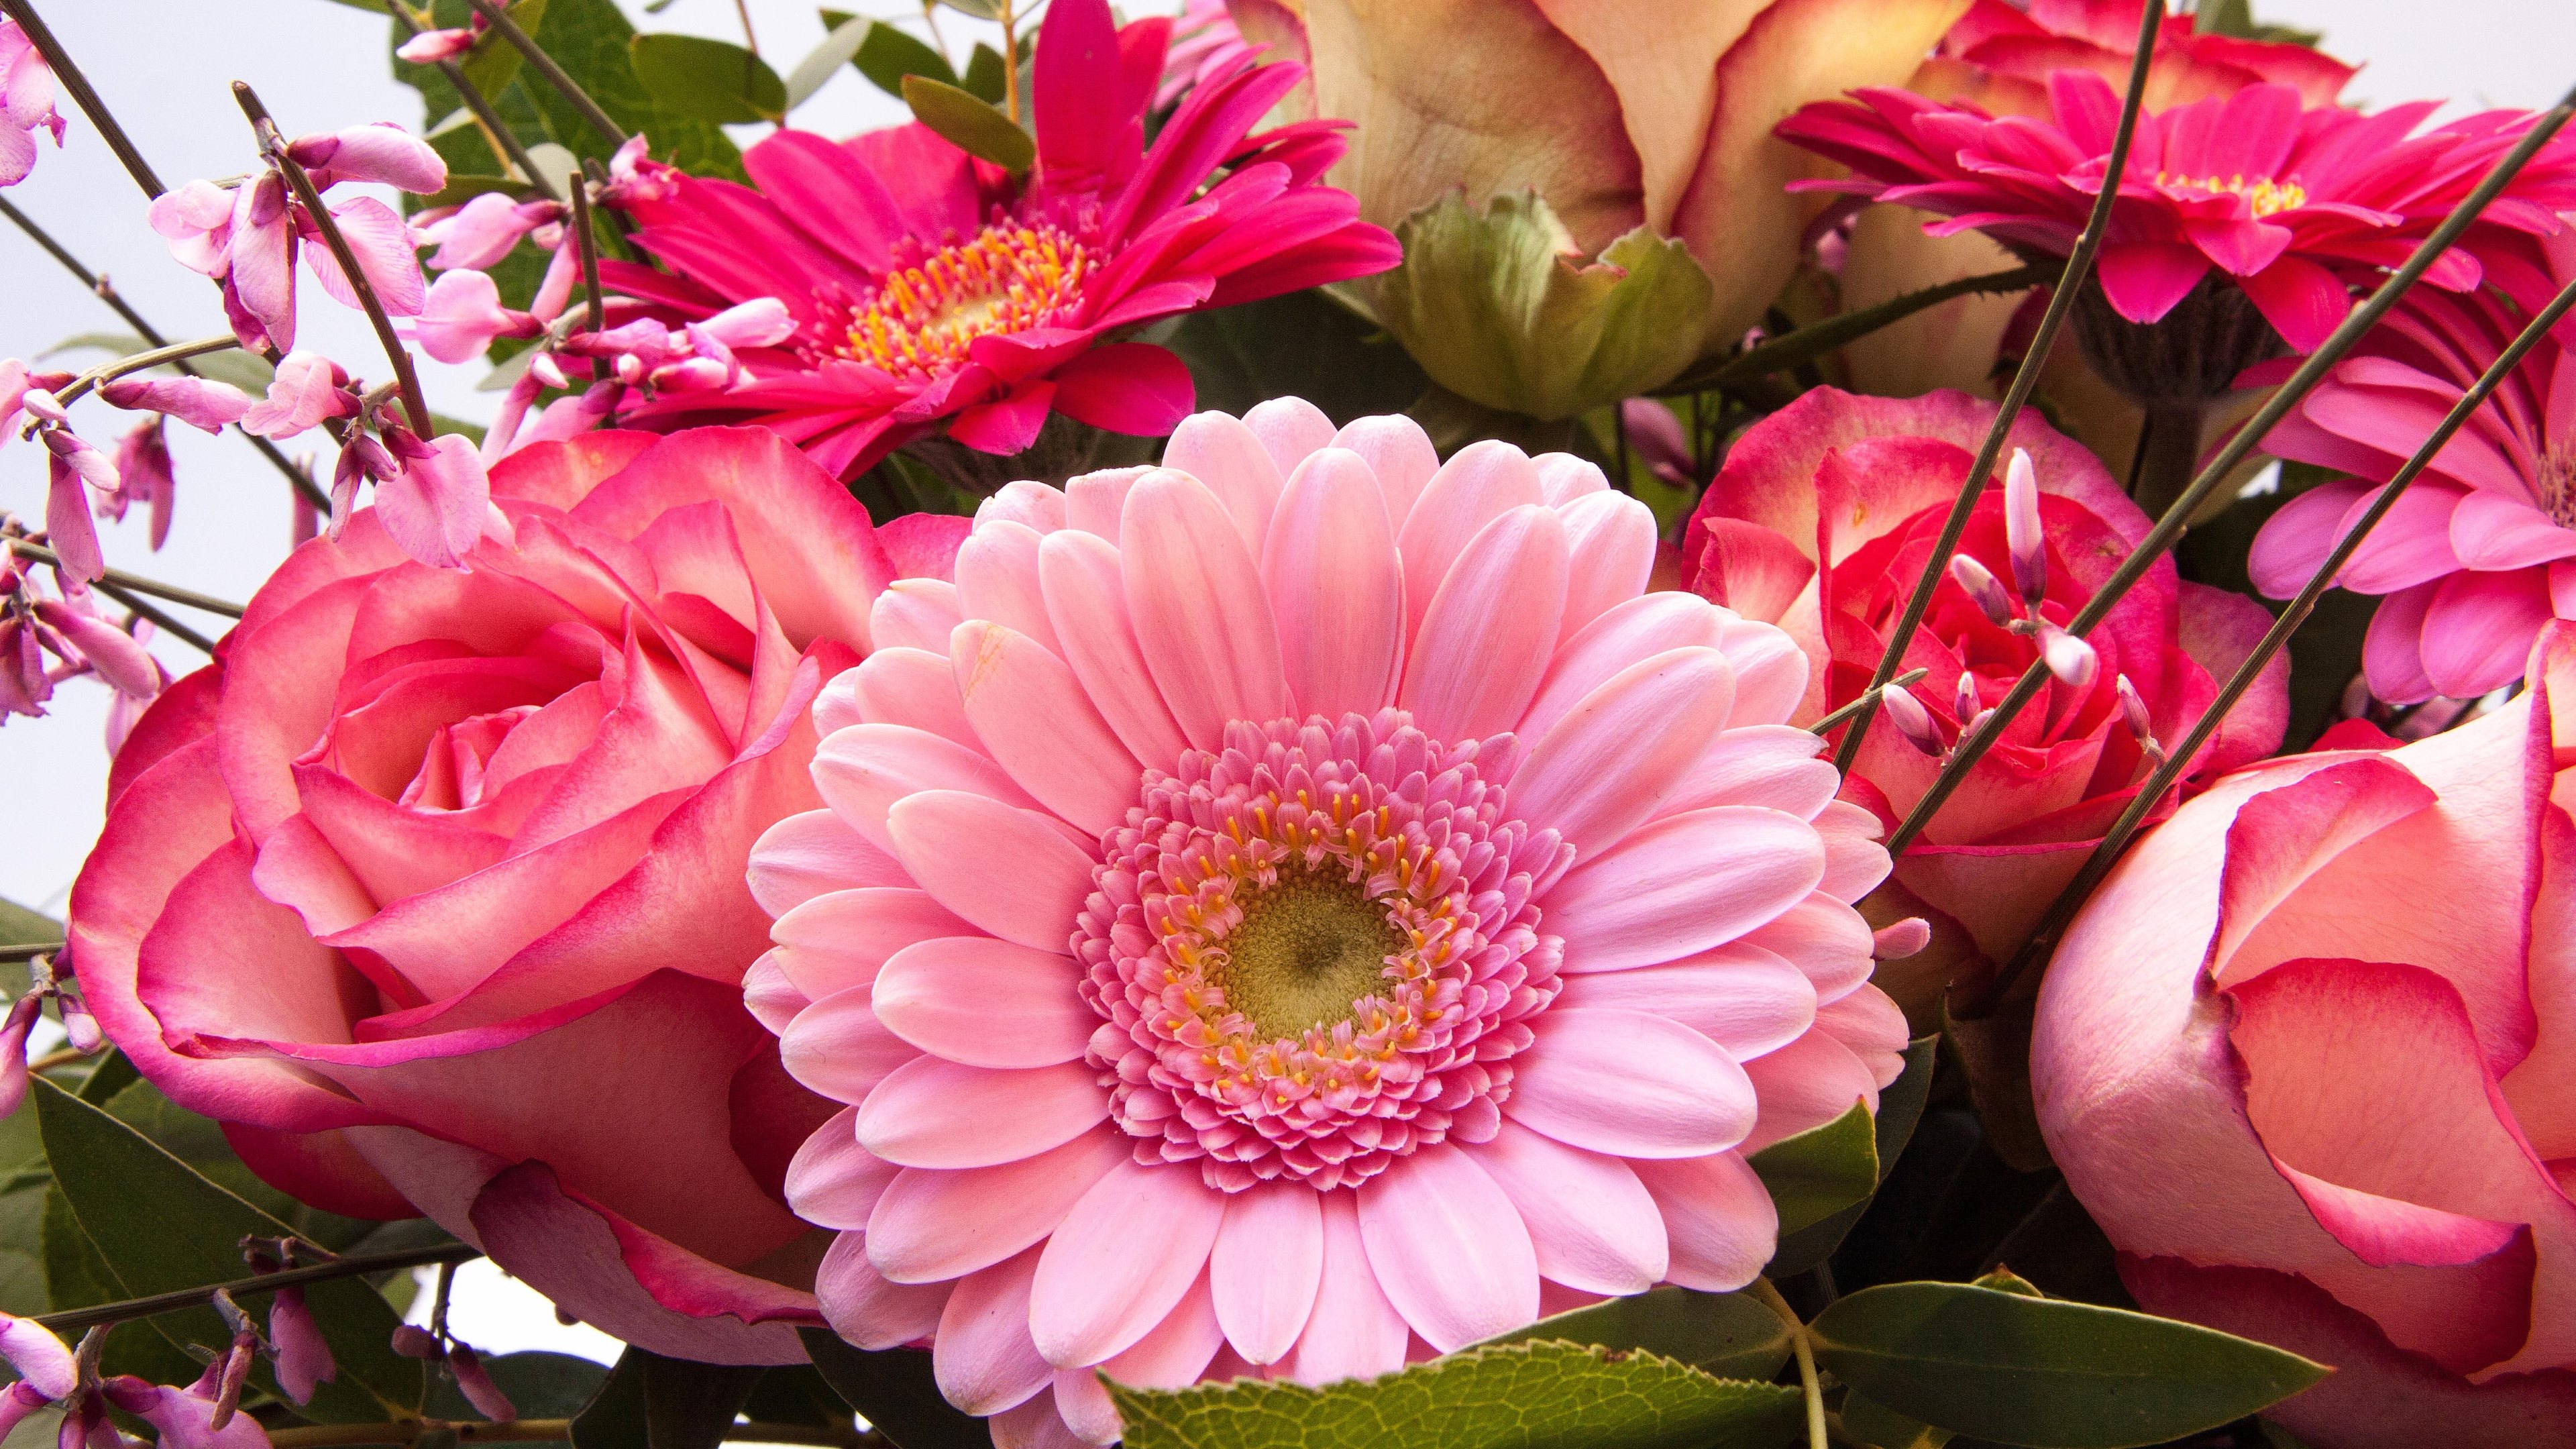 Flower bouquets for special events hd wallpapers 4k 4k hd wallpaper 3 flowers bouquet for special events dhlflorist Choice Image